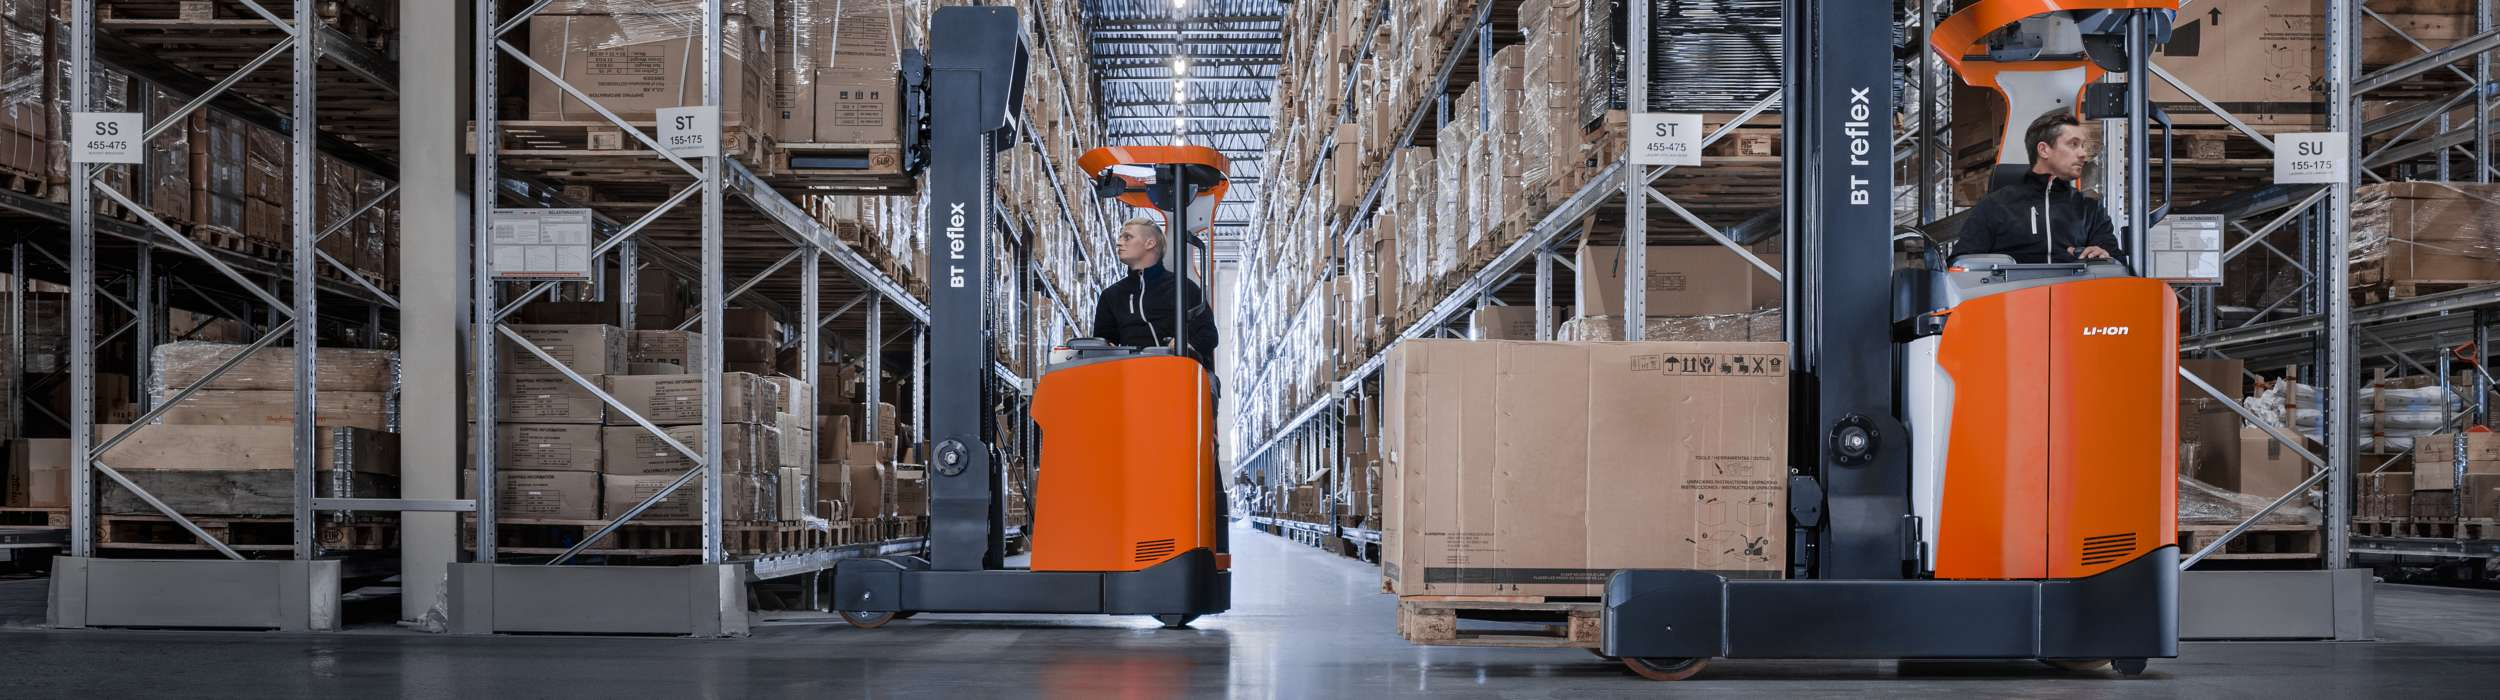 BT Reflex reach trucks used in warehousing